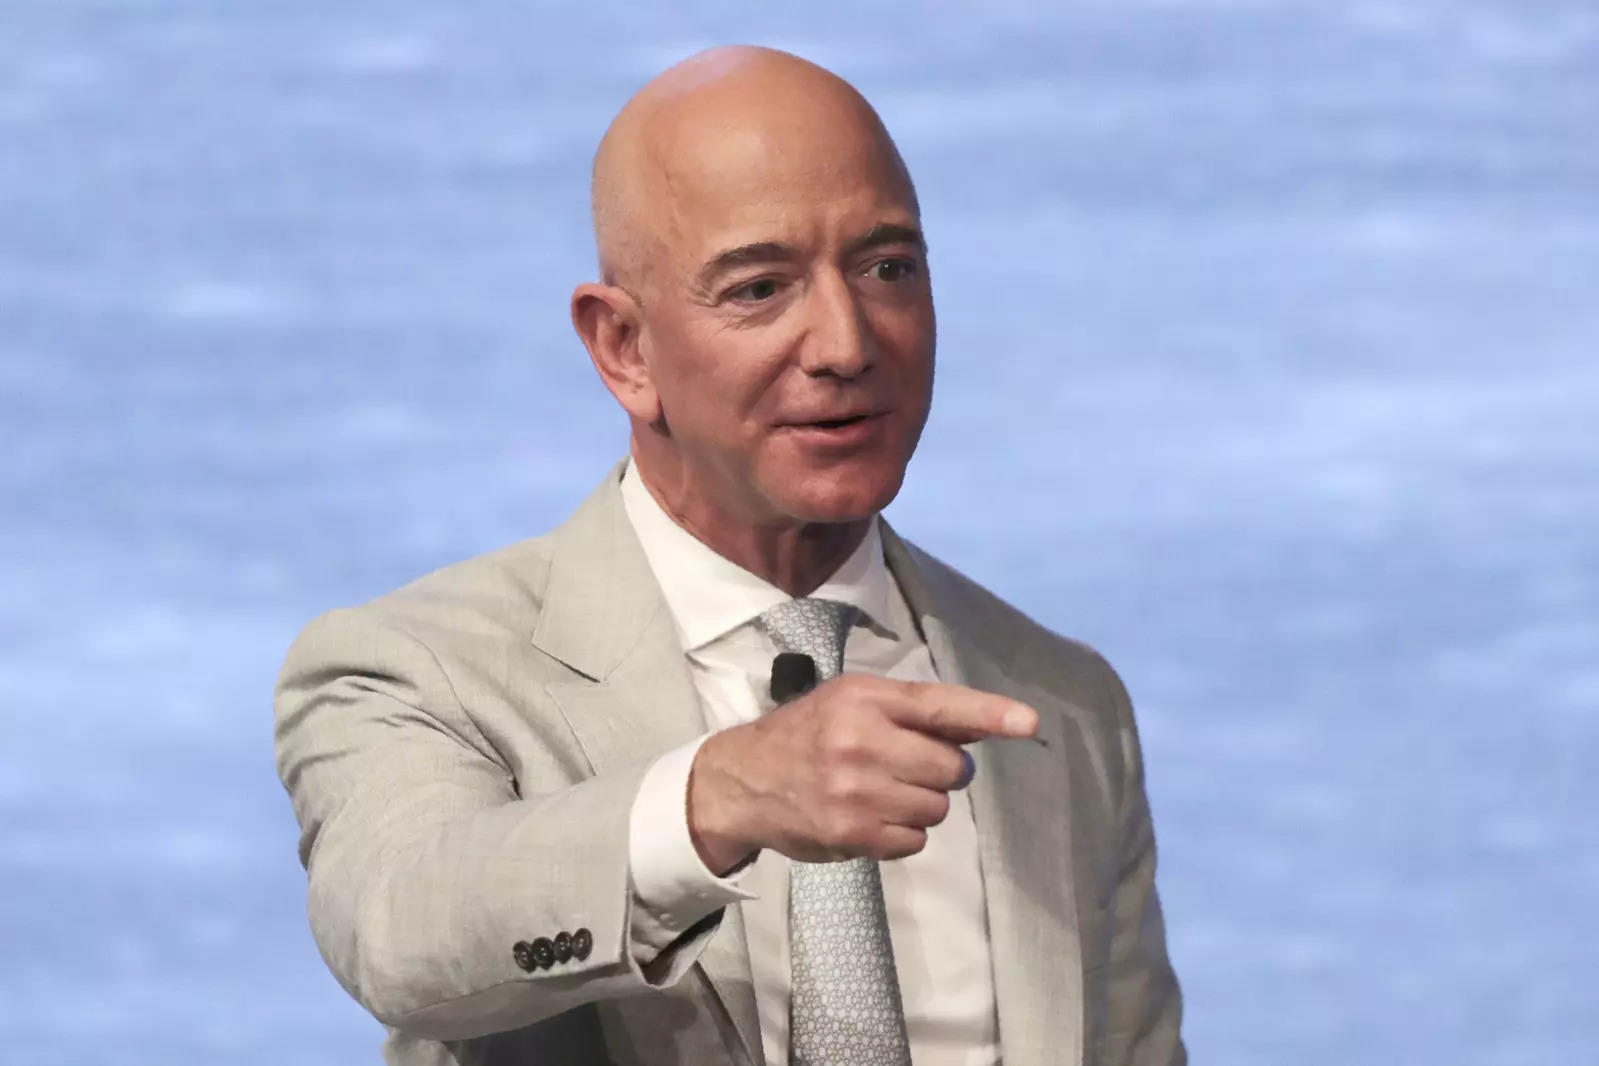 Bezos has just learned how to take a vacation, but the lawmakers uniting to rein in his empire aren't afraid of Andy Jassy